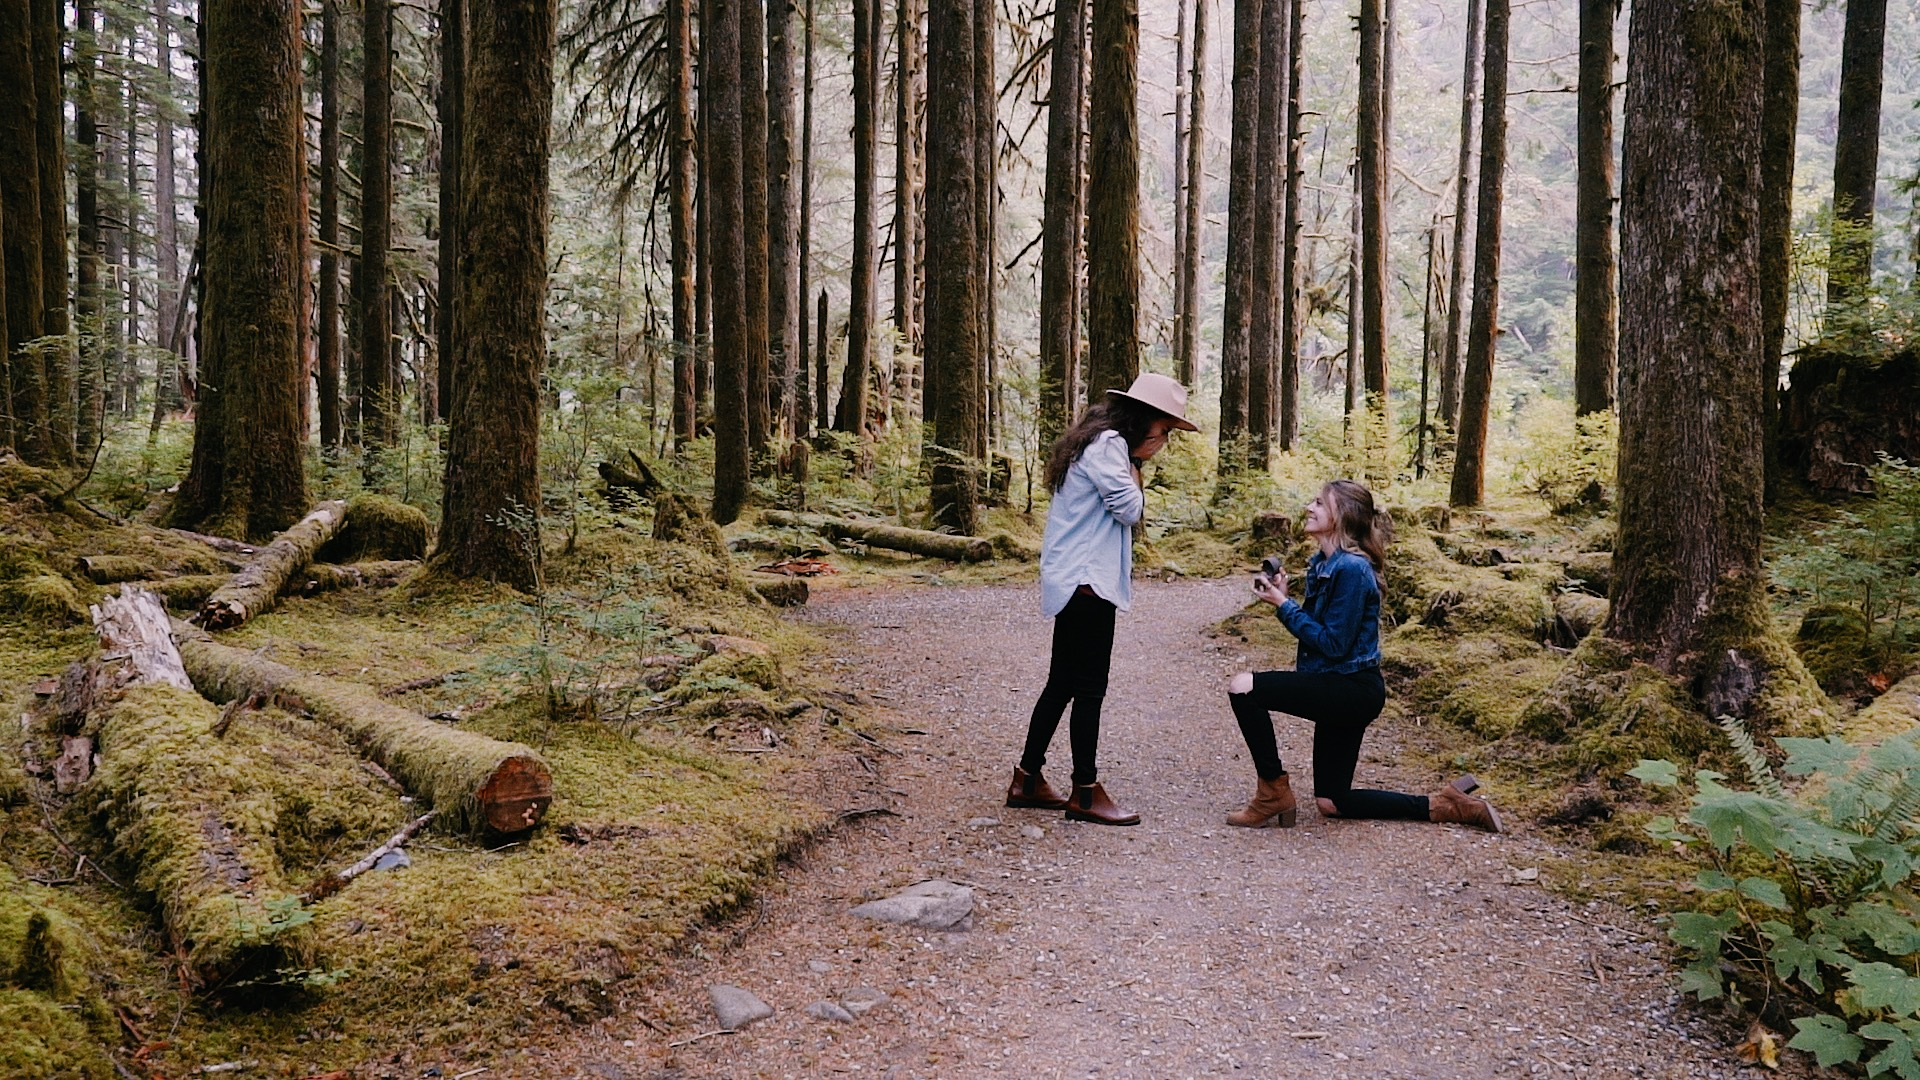 Katie + Mikayla | North Bend, Washington | Middle Fork Trail